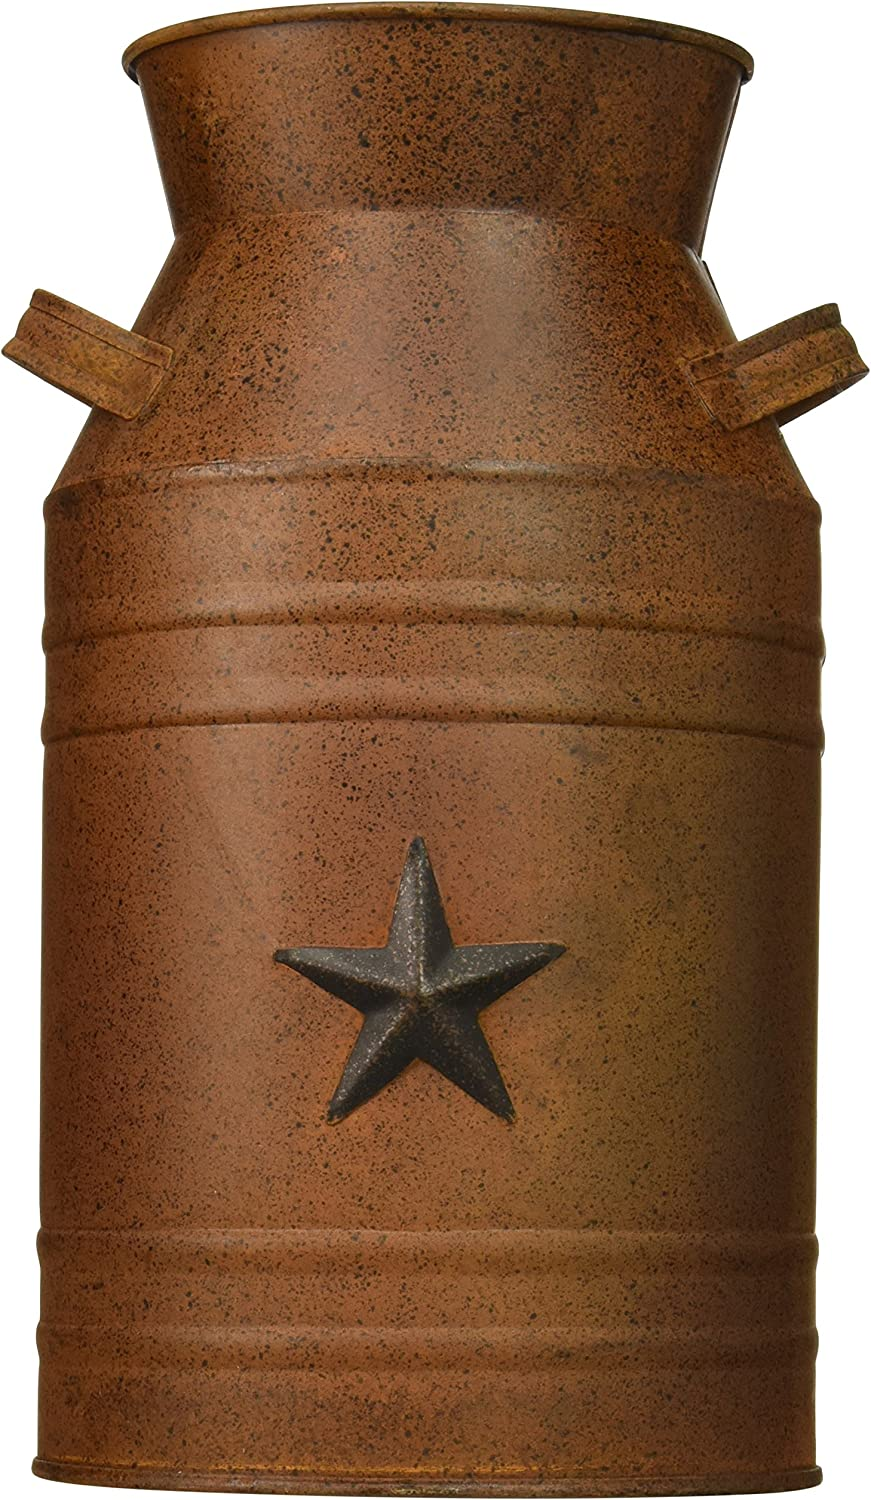 Craft Outlet Milk Can Container with Star Attached, 10.5-Inch, Rust